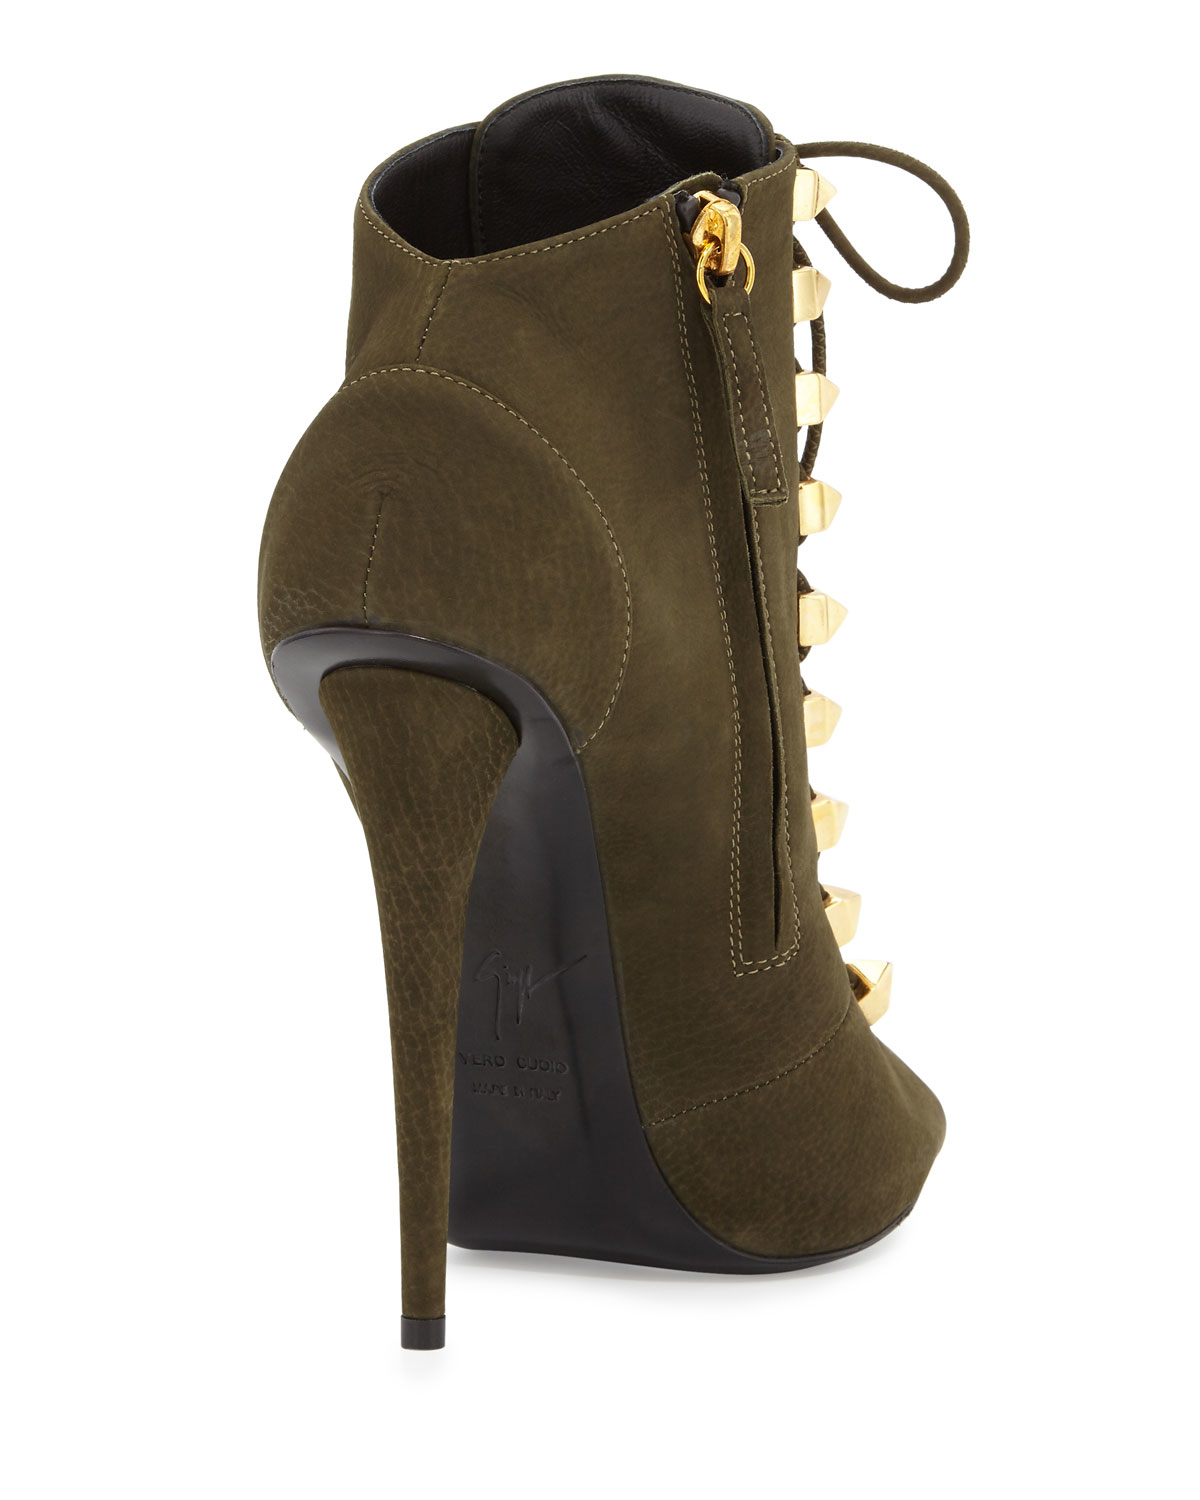 Lyst - Giuseppe zanotti Suede Lace-up High-heel Bootie in Green